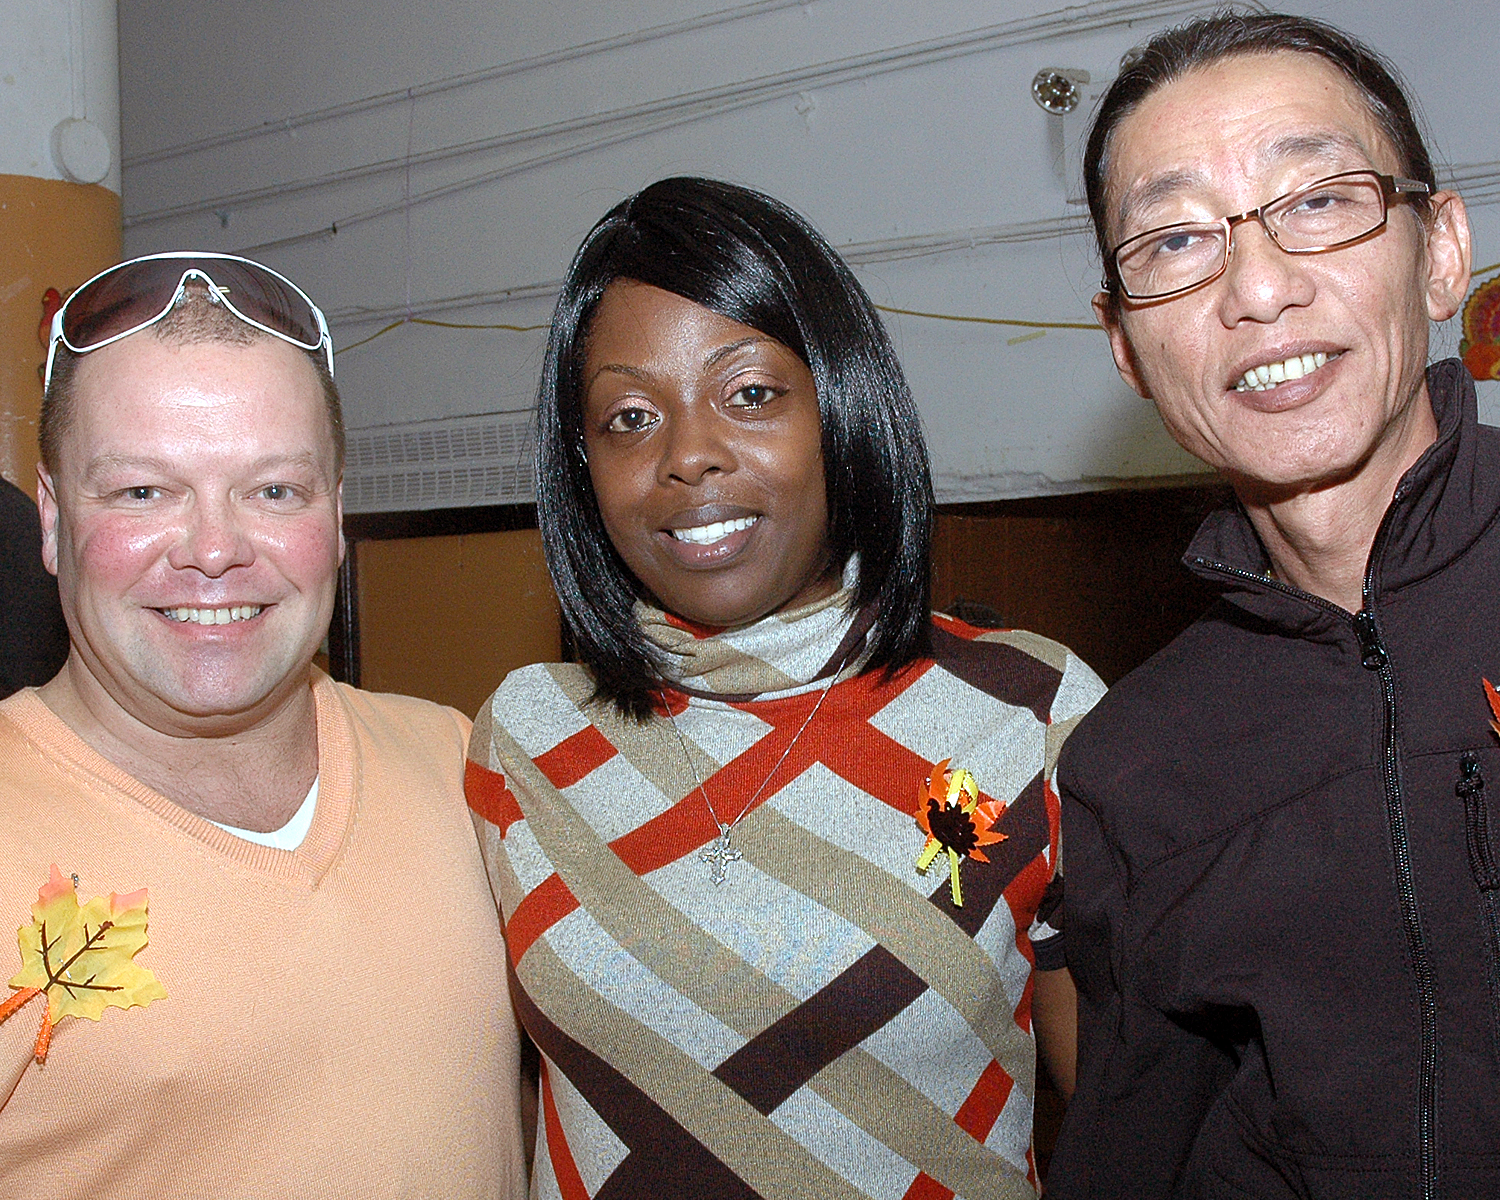 Frederick Kinney, Tamaqua Pierce and Yonewin Maung